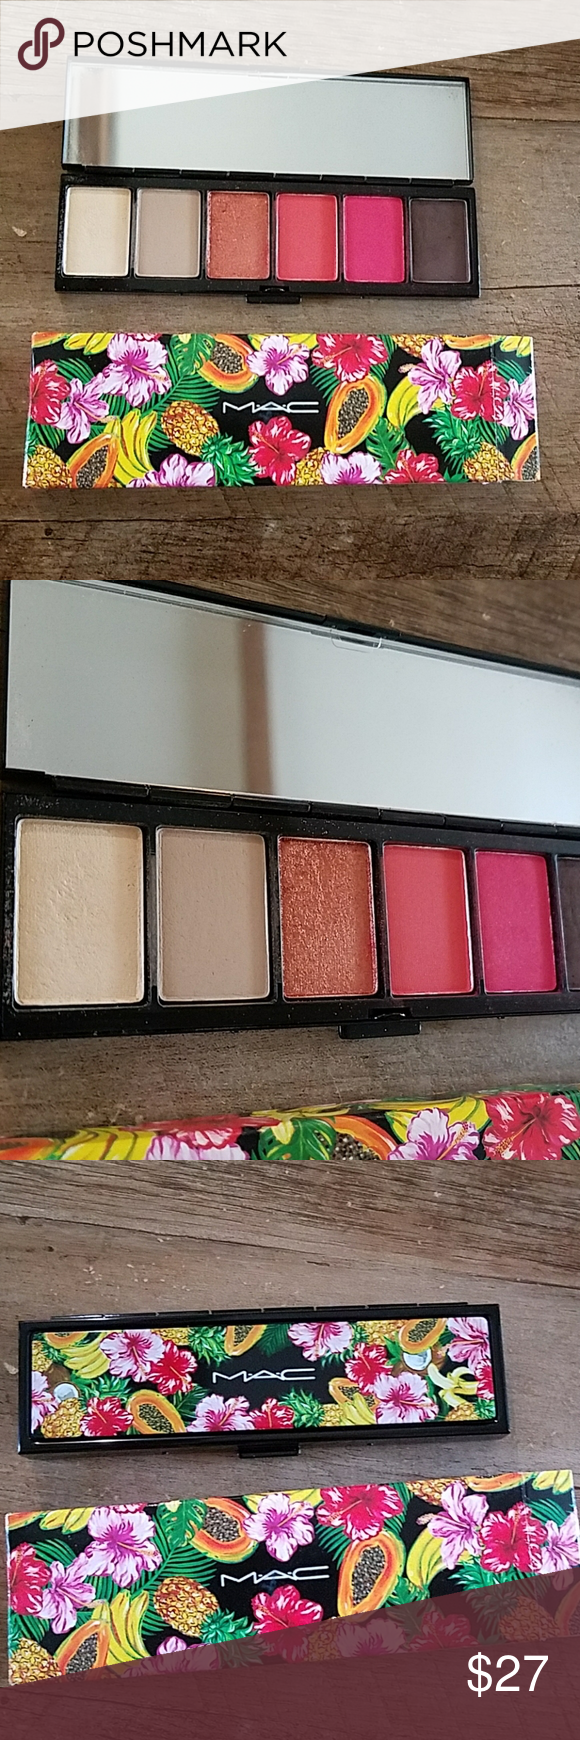 Mac eyeshadow palette Mac eyeshadow, Mac eyeshadow